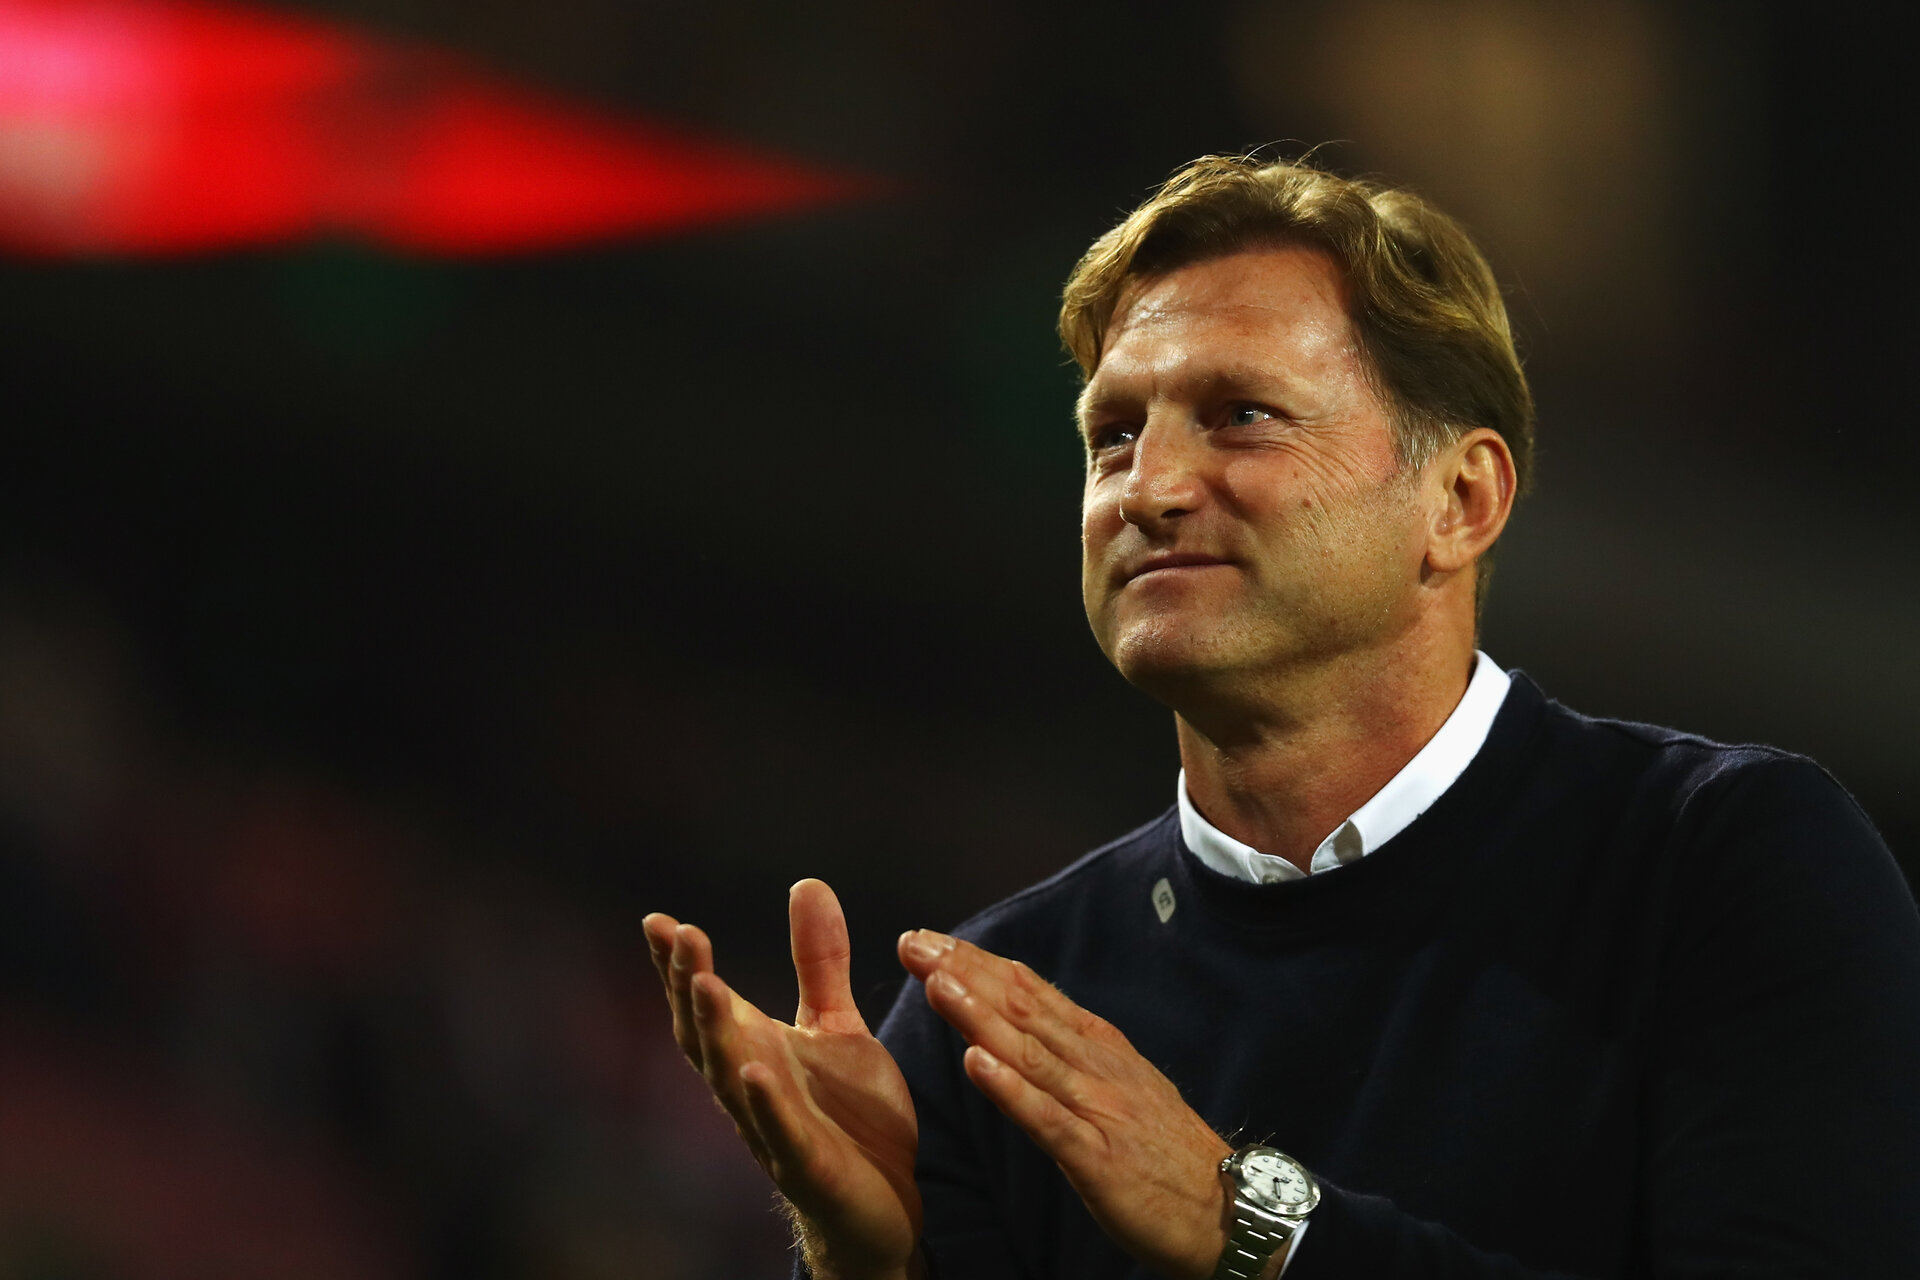 COLOGNE, GERMANY - OCTOBER 01:  RB Leipzig Head Coach / Manager, Ralph Hasenhuttl celebrates after victory in the Bundesliga match between 1. FC Koeln and RB Leipzig at RheinEnergieStadion on October 1, 2017 in Cologne, Germany.  (Photo by Dean Mouhtaropoulos/Bongarts/Getty Images)